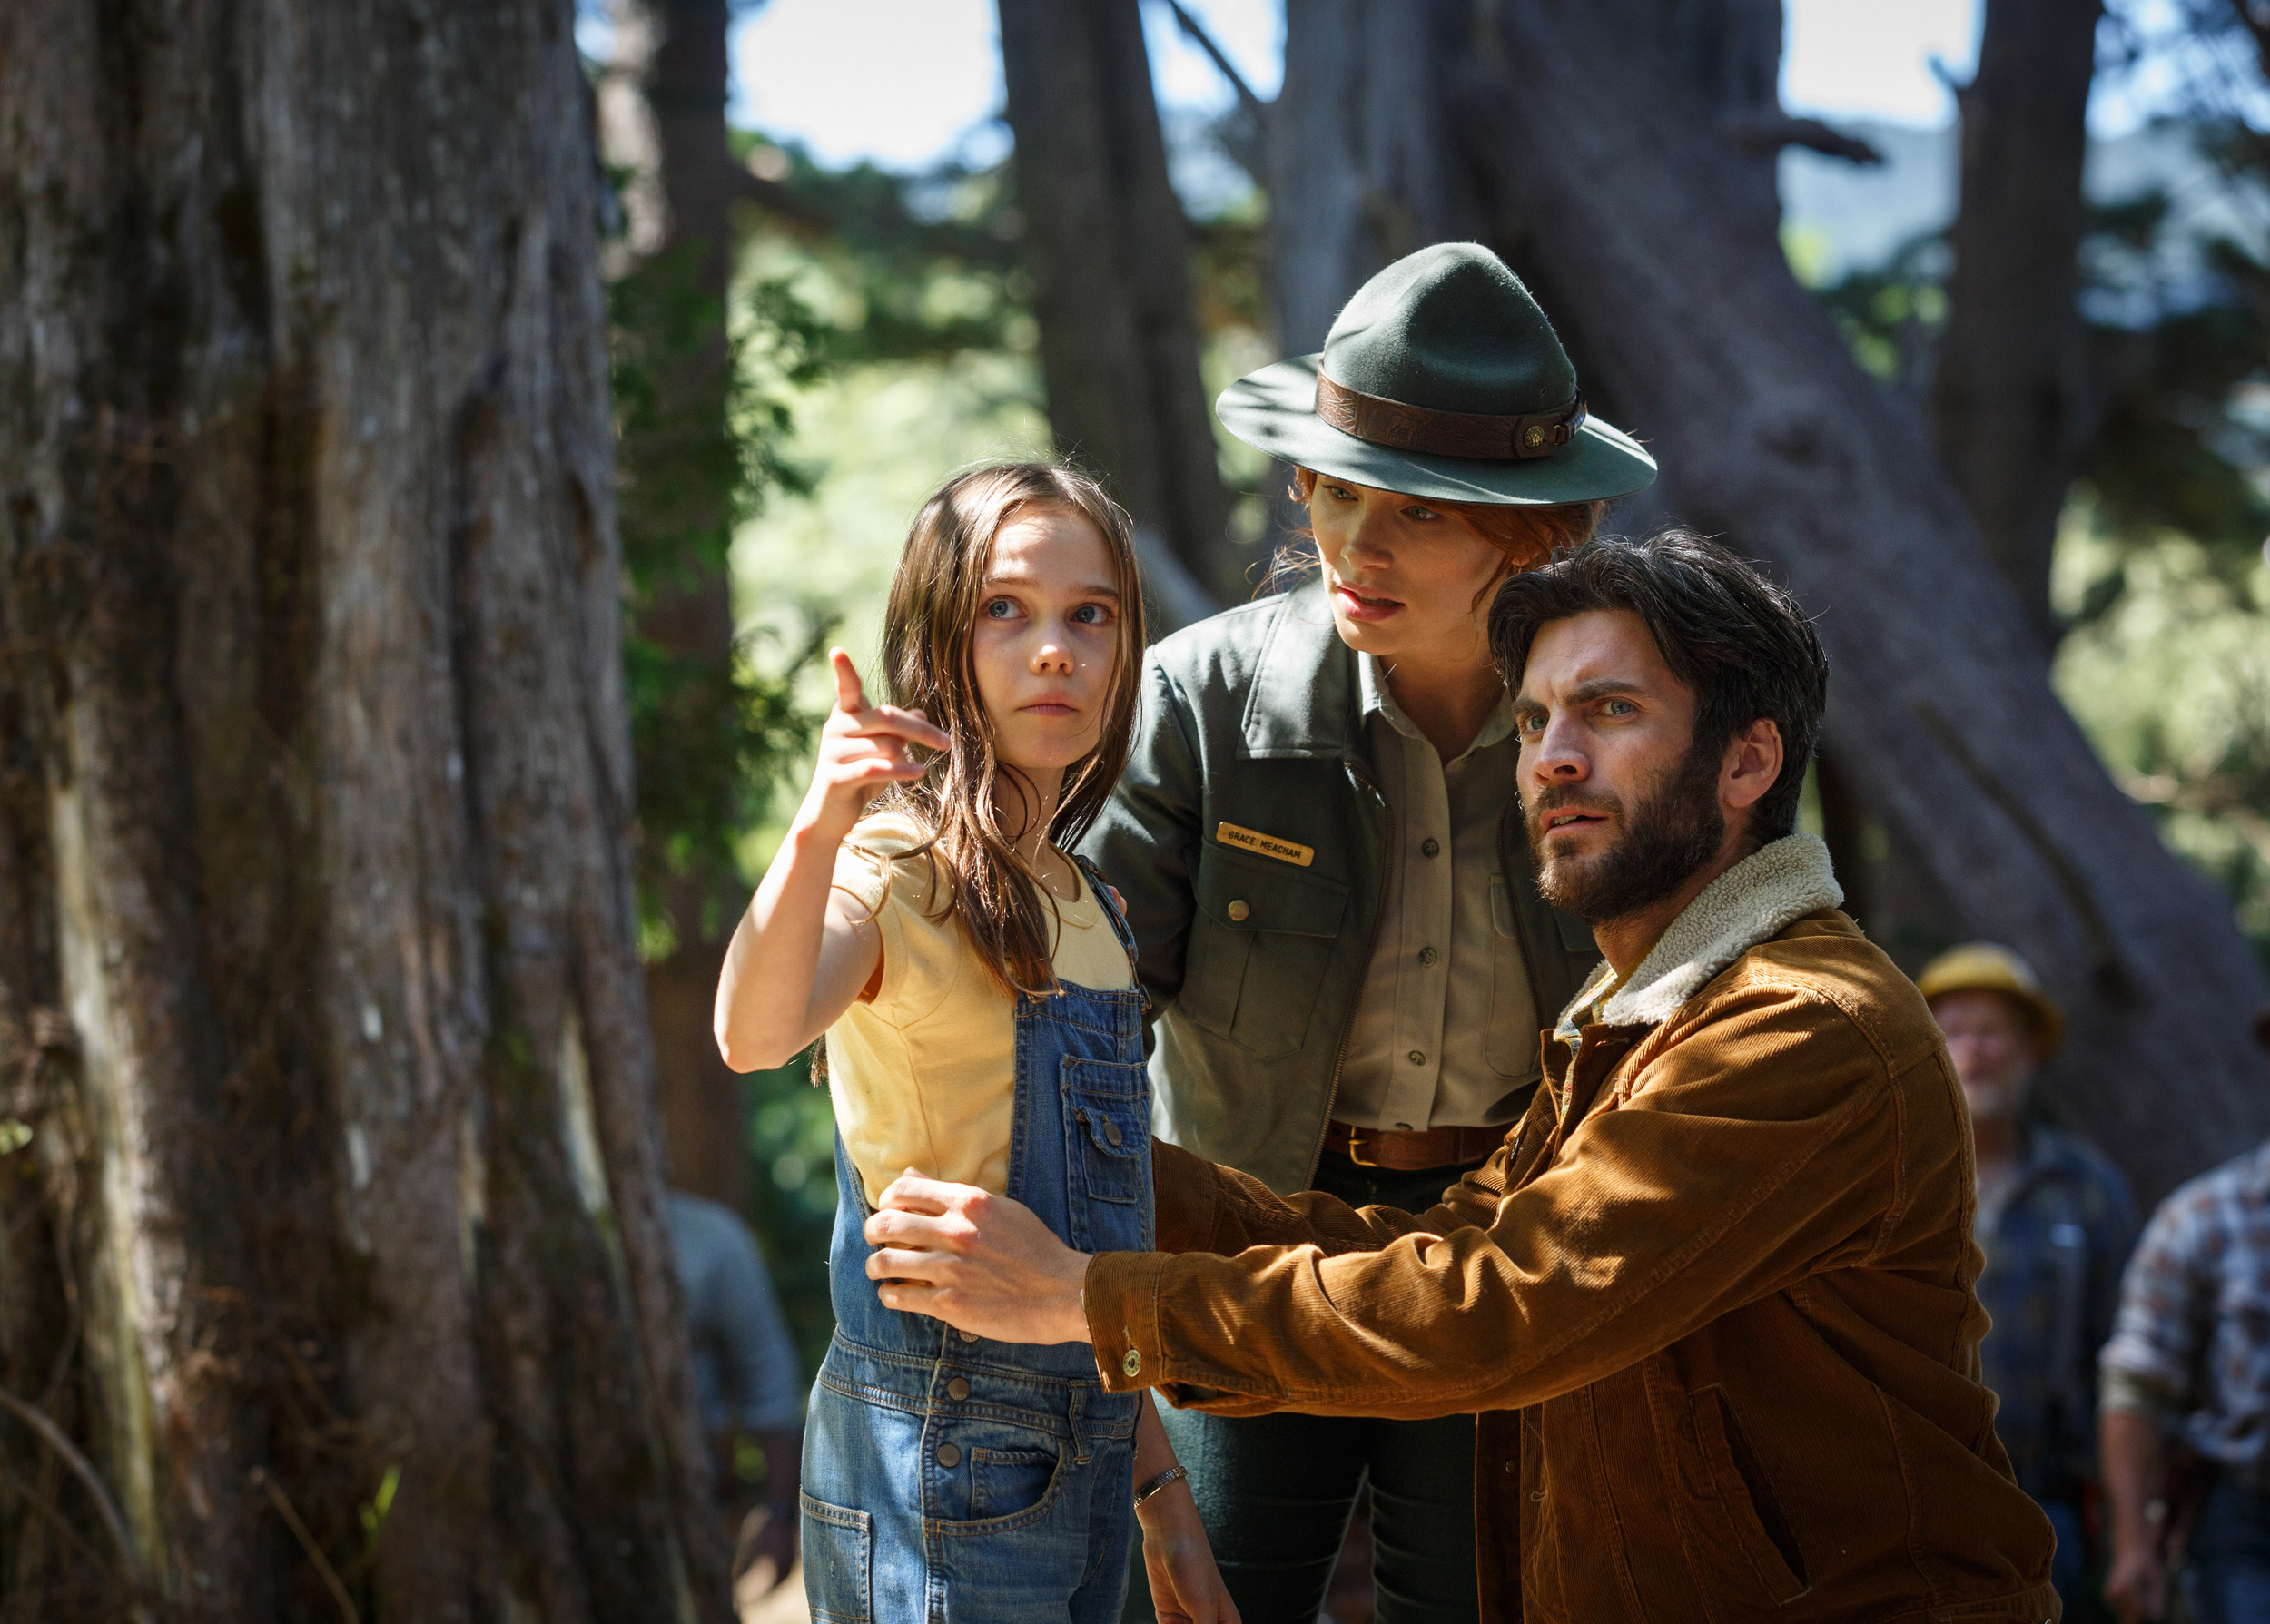 Park Ranger Grace (Howard), her fiancé Jack (Bentley) and his daughter Natalie (Laurence) find Pete in the forest.